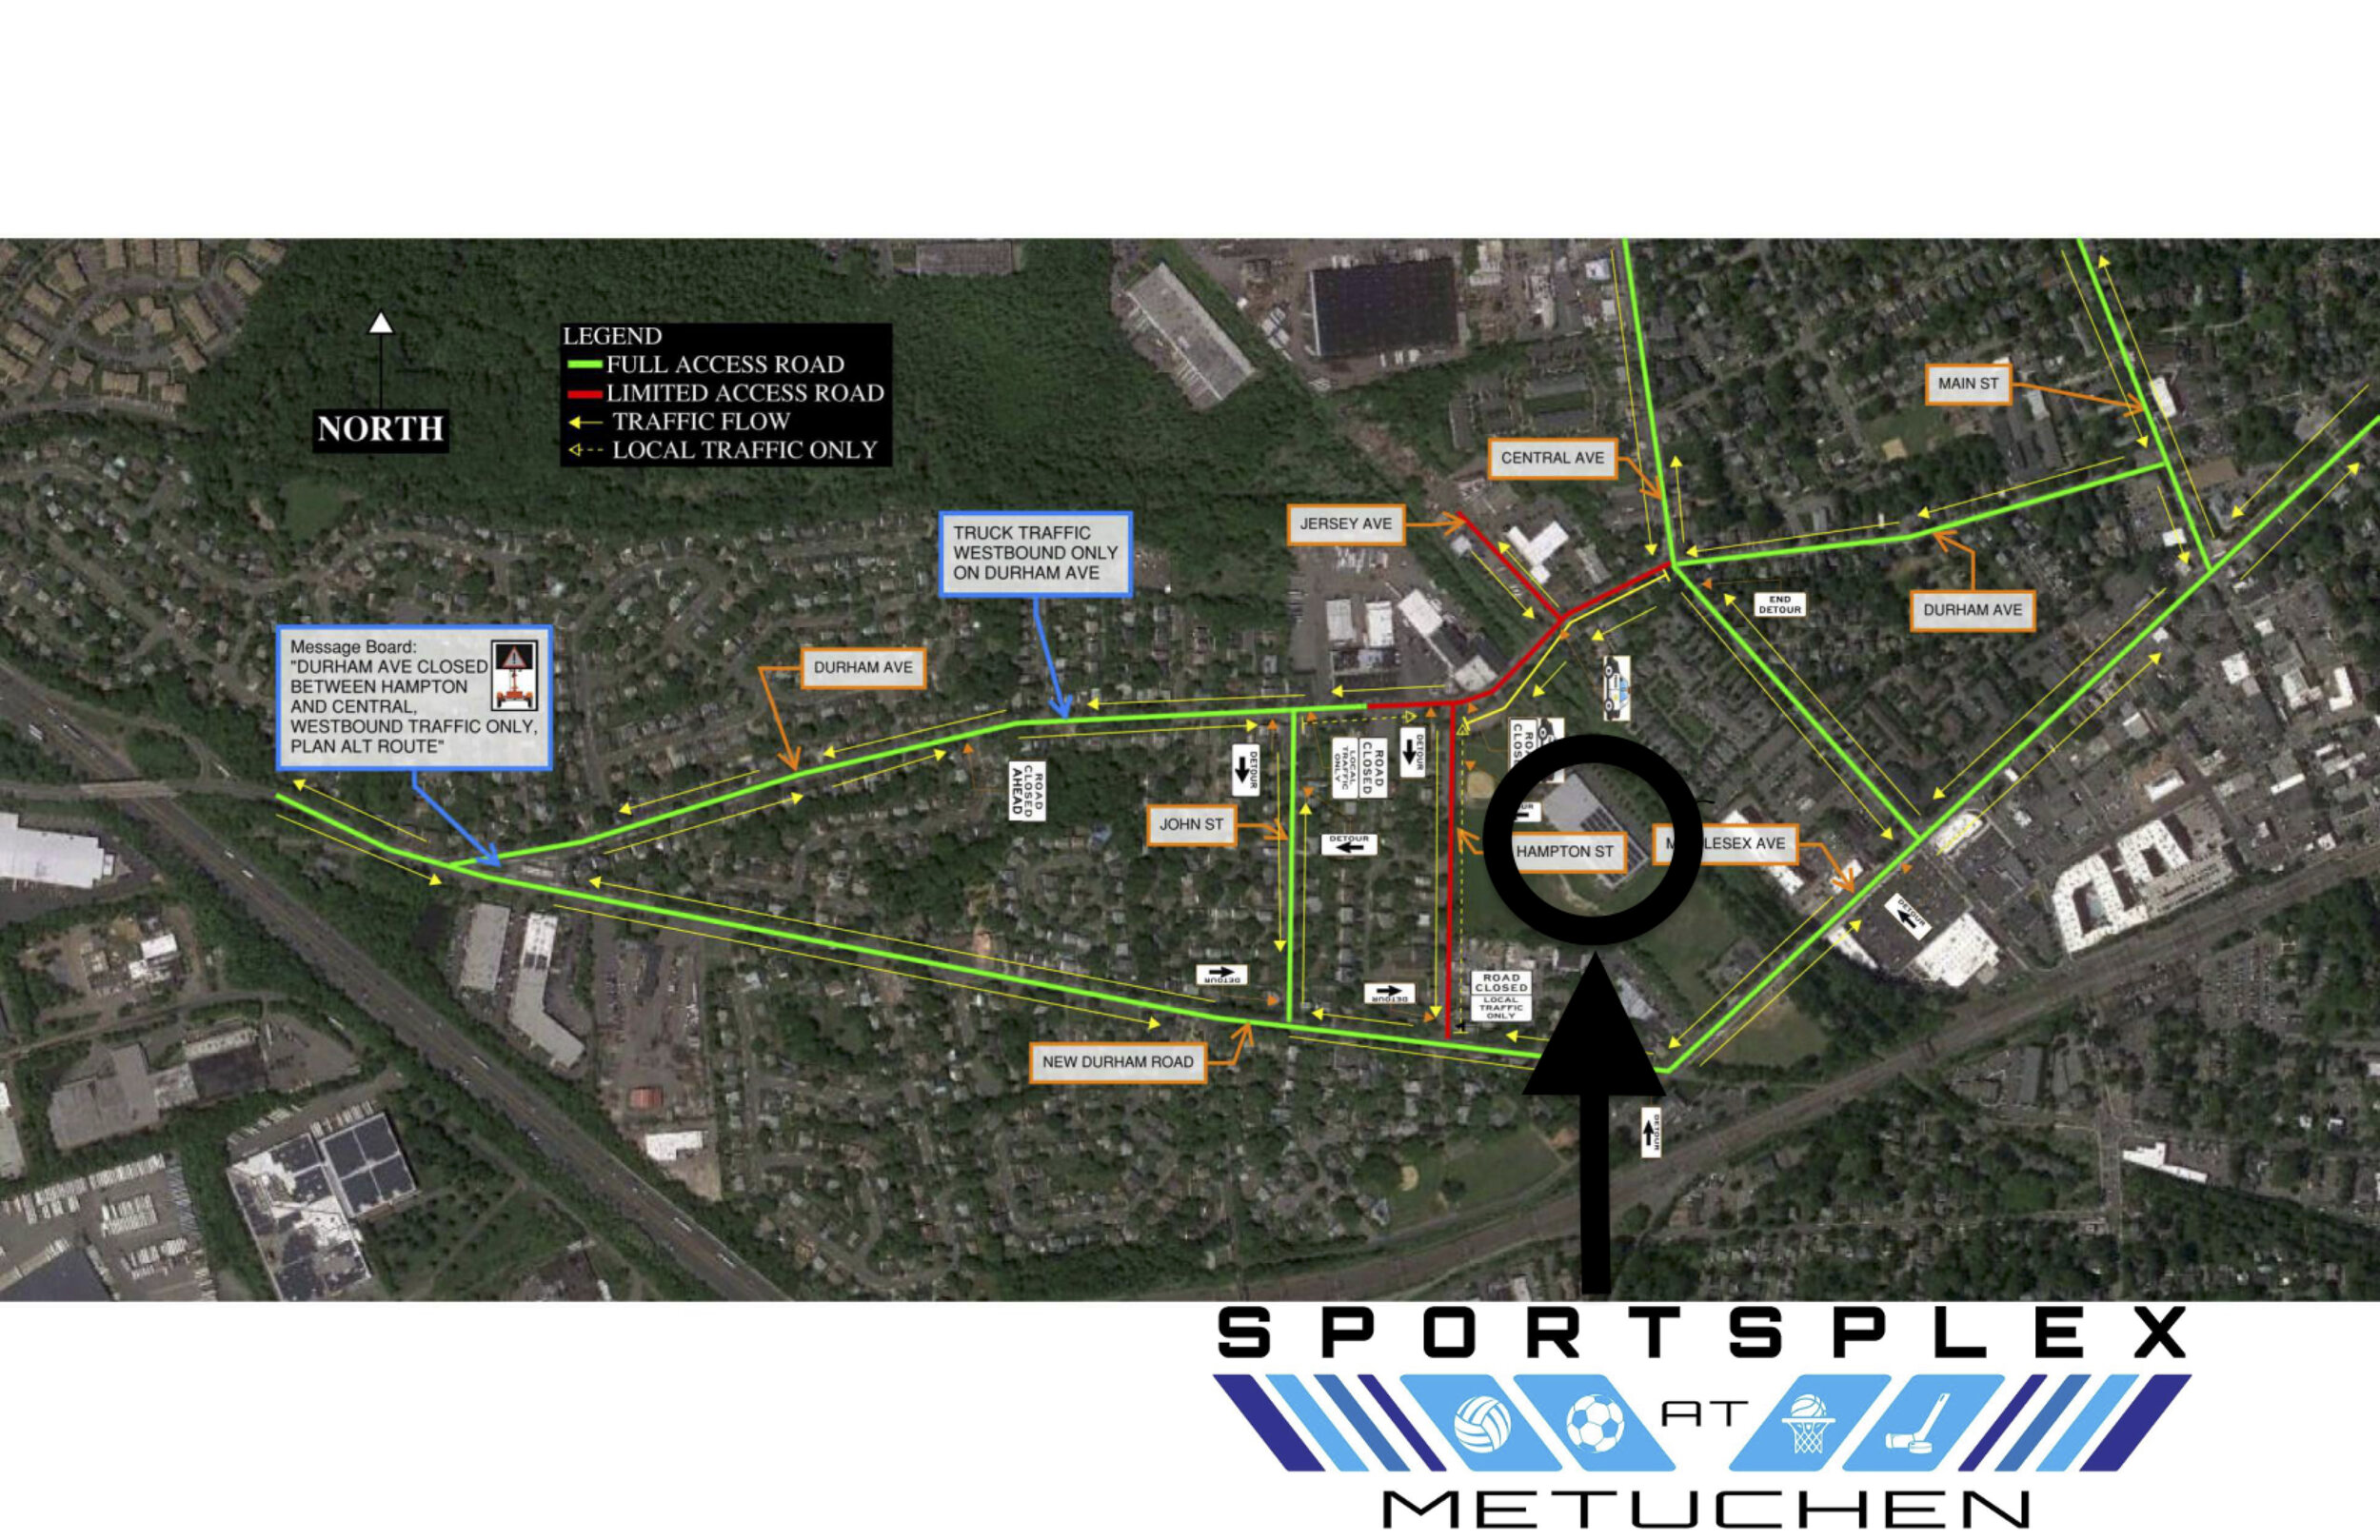 """Effective September 23rd, 2019:  Middlesex Water Company will be doing construction in the Metuchen area. The construction requires road closures and traffic detours will be made on Durham Avenue, which is the street we are located on. Above is a map to help everyone find us during these estimated 6 weeks of construction. An informative video is below, provided by the Metuchen Media, to explain the work that will be completed.    Metuchen Media Informational Video:    https://www.youtube.com/watch?v=mI9jEVfdQw0   """""""